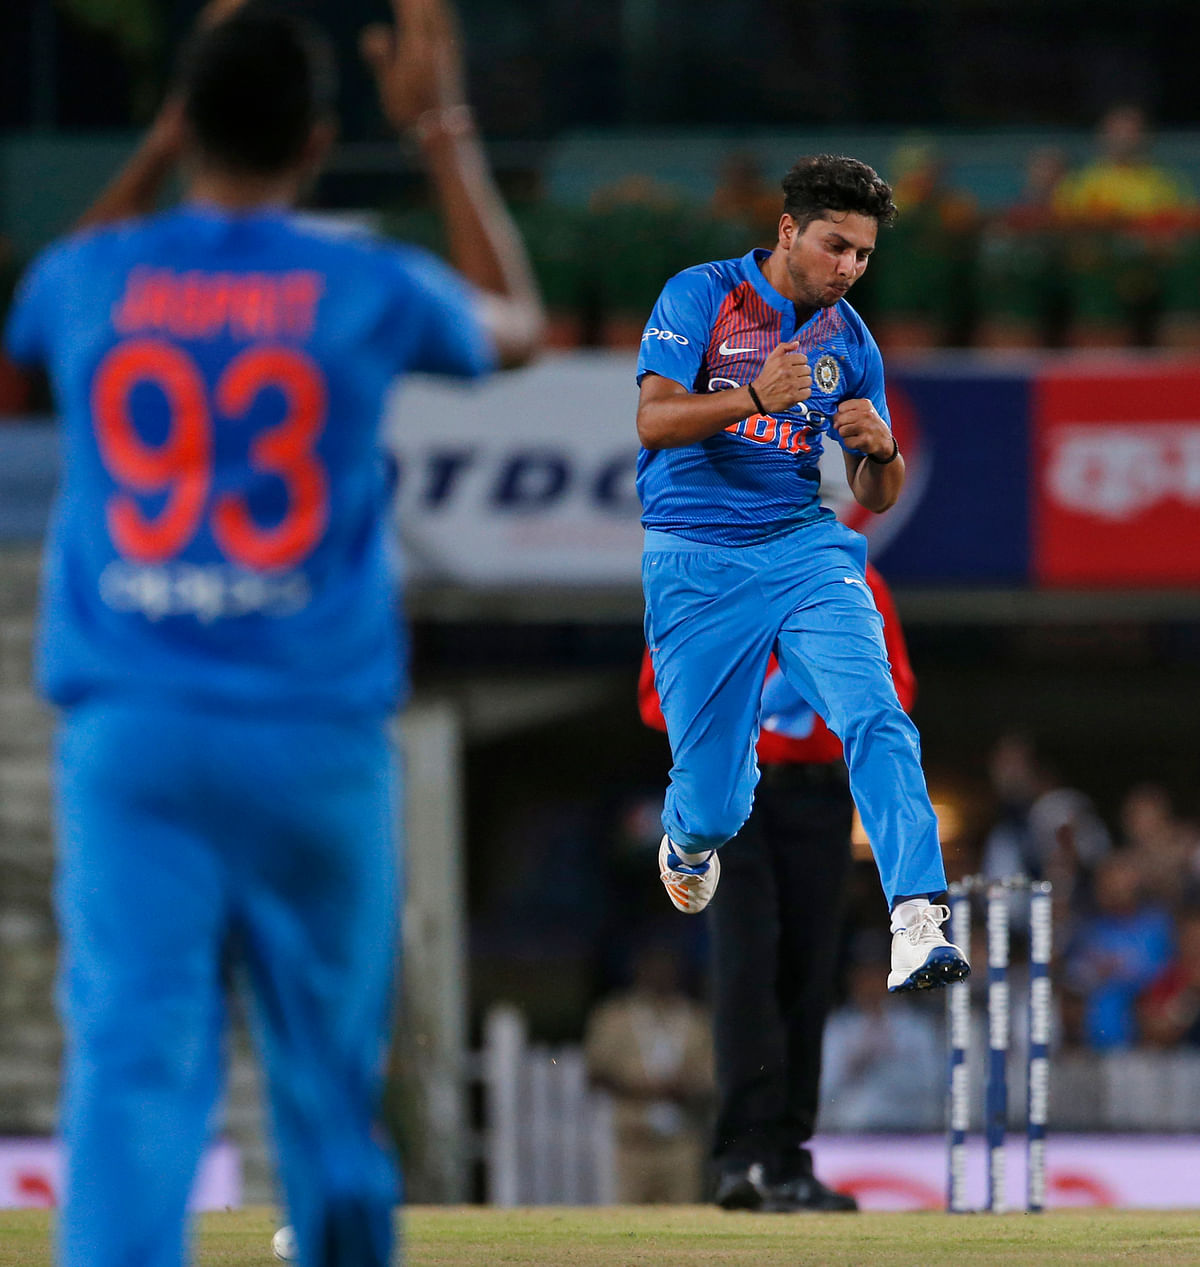 India's Kuldeep Yadav leaps in air as he  celebrates the wicket of Australia's Aaron Finch during their first T20 cricket match in Ranchi